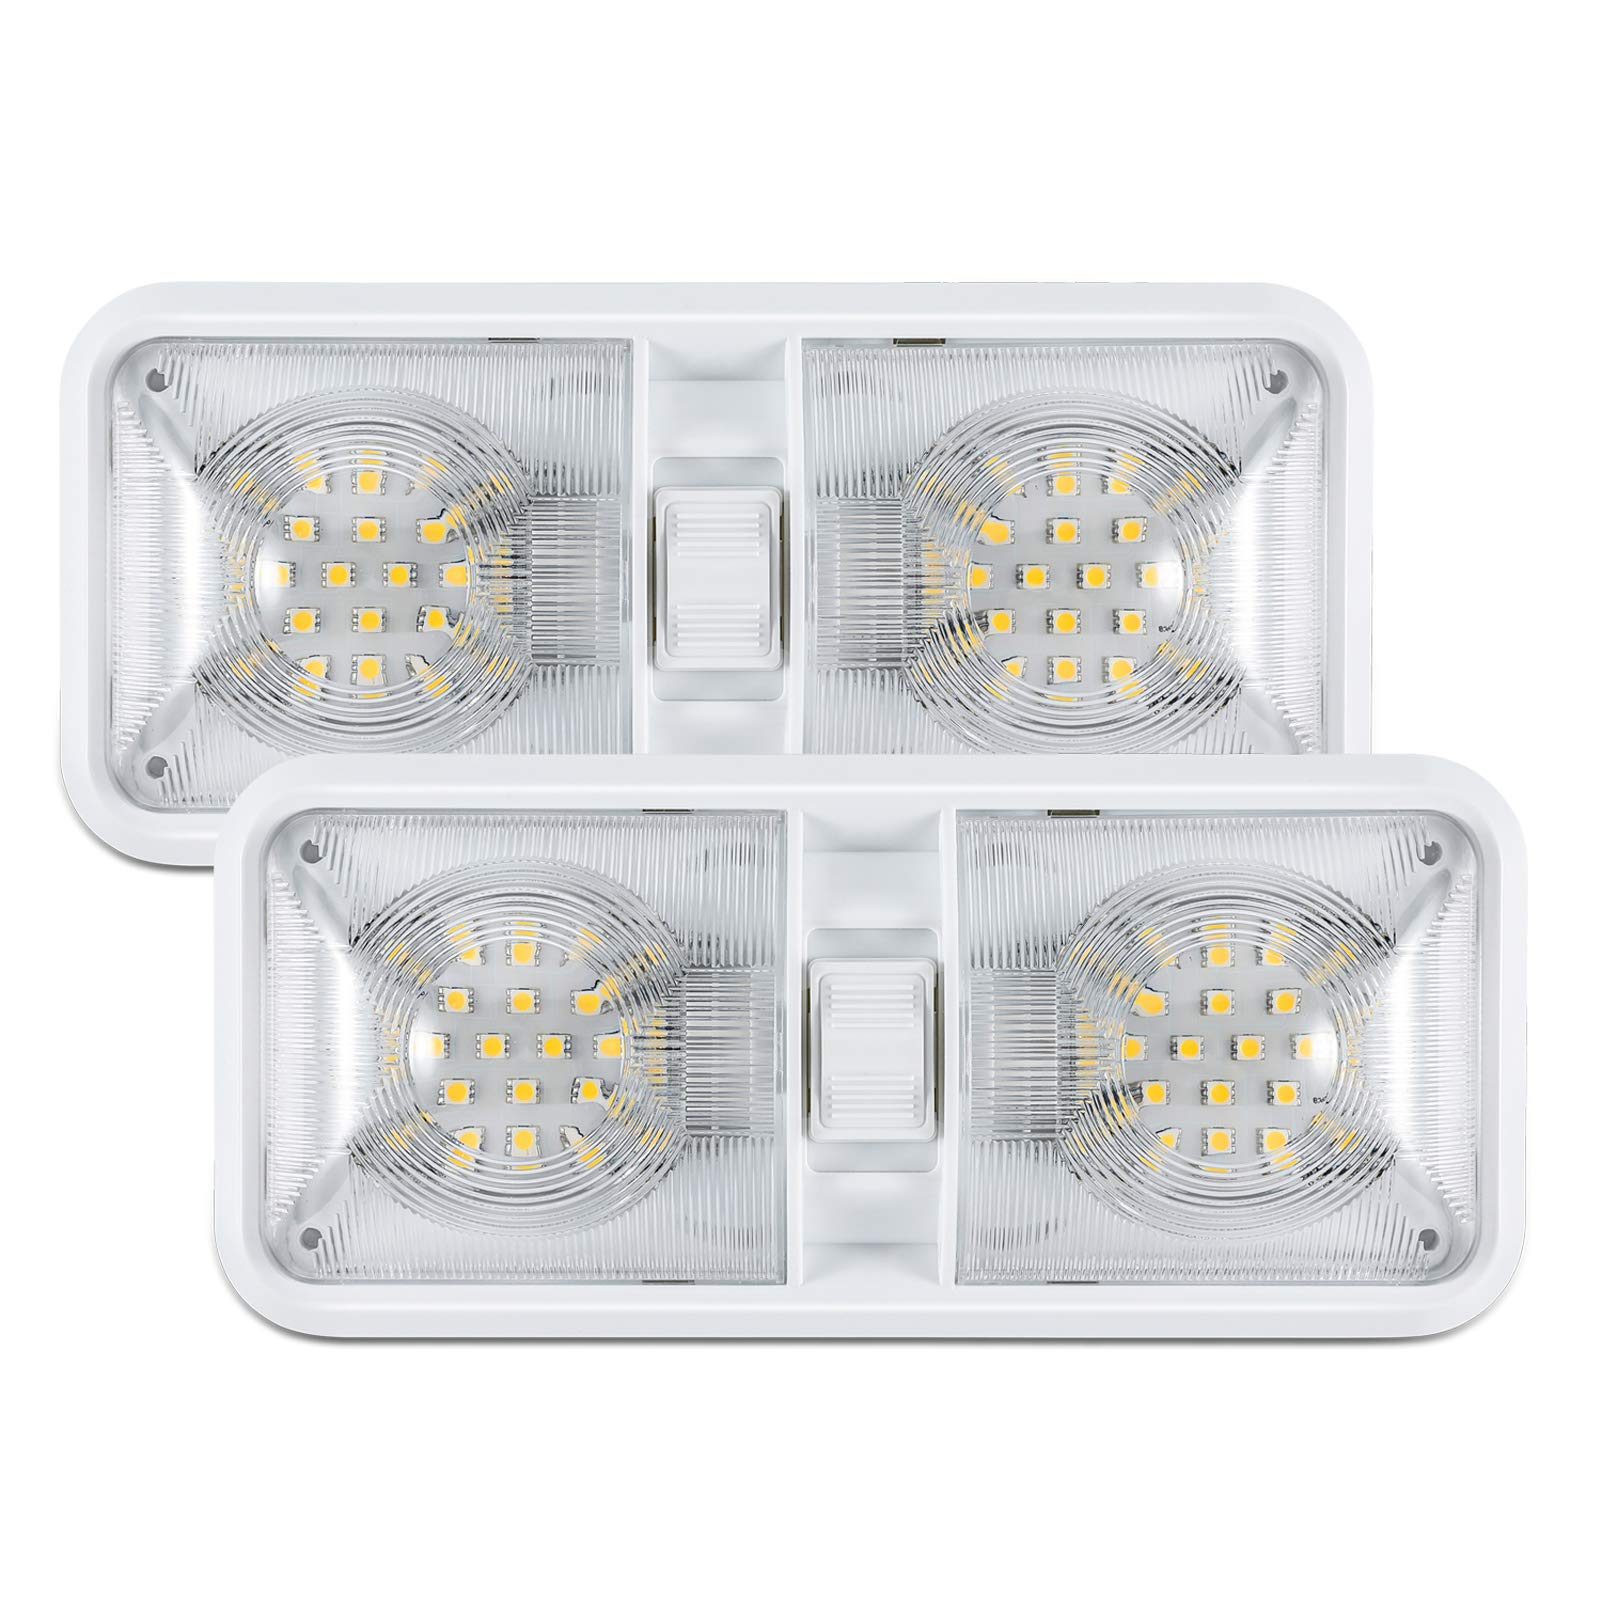 Kohree 12V Led RV Ceiling Dome Light RV Interior Lighting